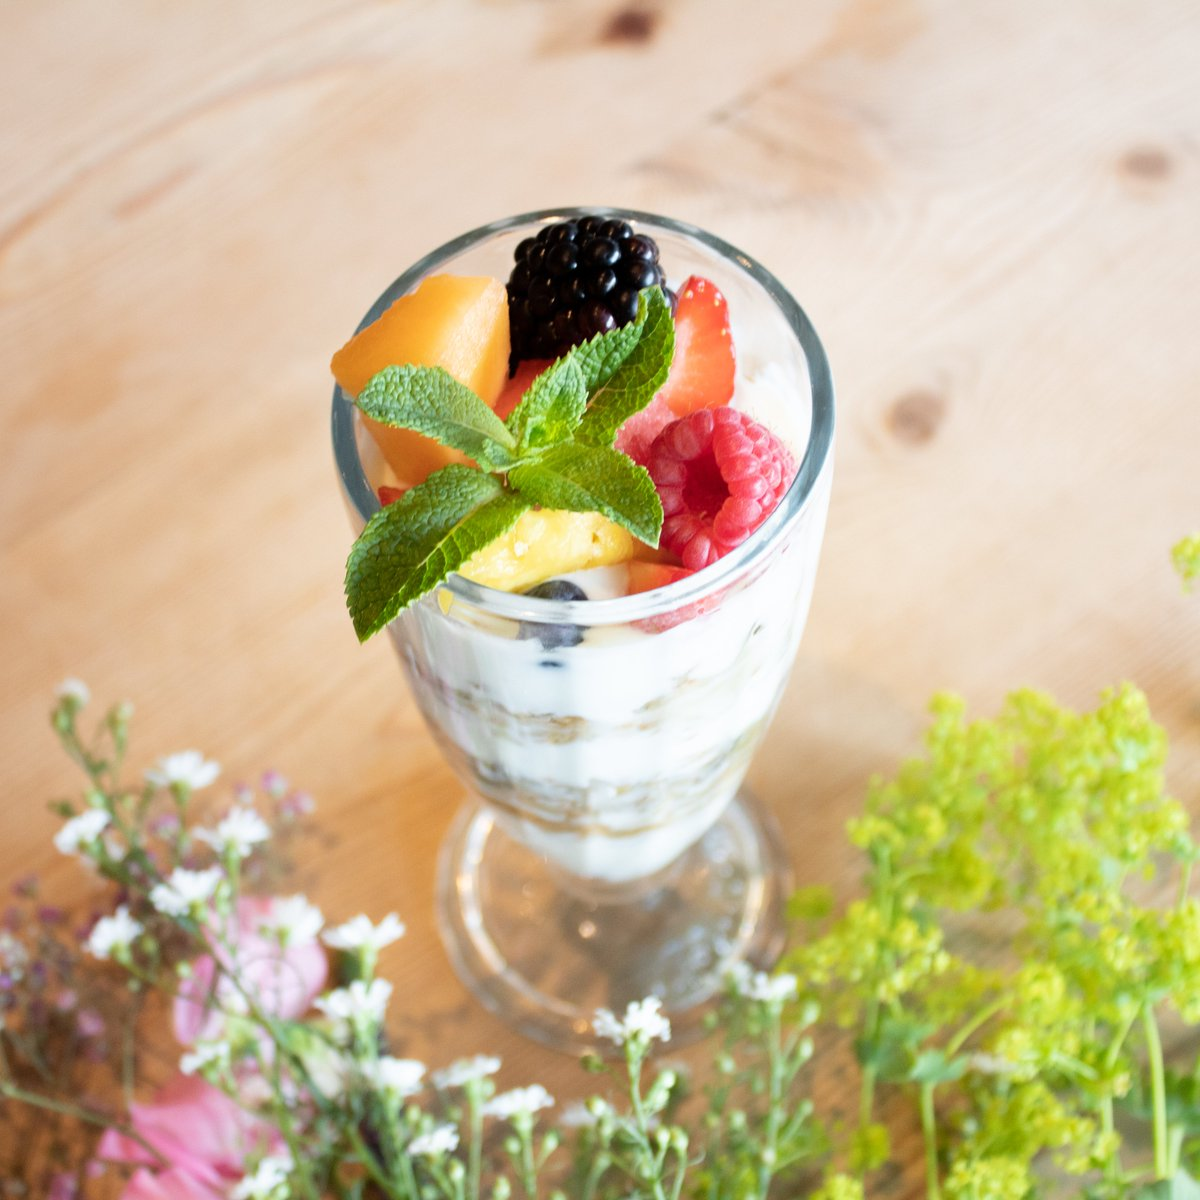 🌱Join our 7 dairy-free challenge🌱Try during 7 days our plant-based alternatives. Day 1t: 🍓Granola Parfait🍓 with organic coconut yoghurt and fresh fruit. You can also order it with our Crunola which makes it completely vegan. 🌱😋 #dairyfree #lpqplantlove #WPMD @proveg.inter https://t.co/bse7xRxJk4